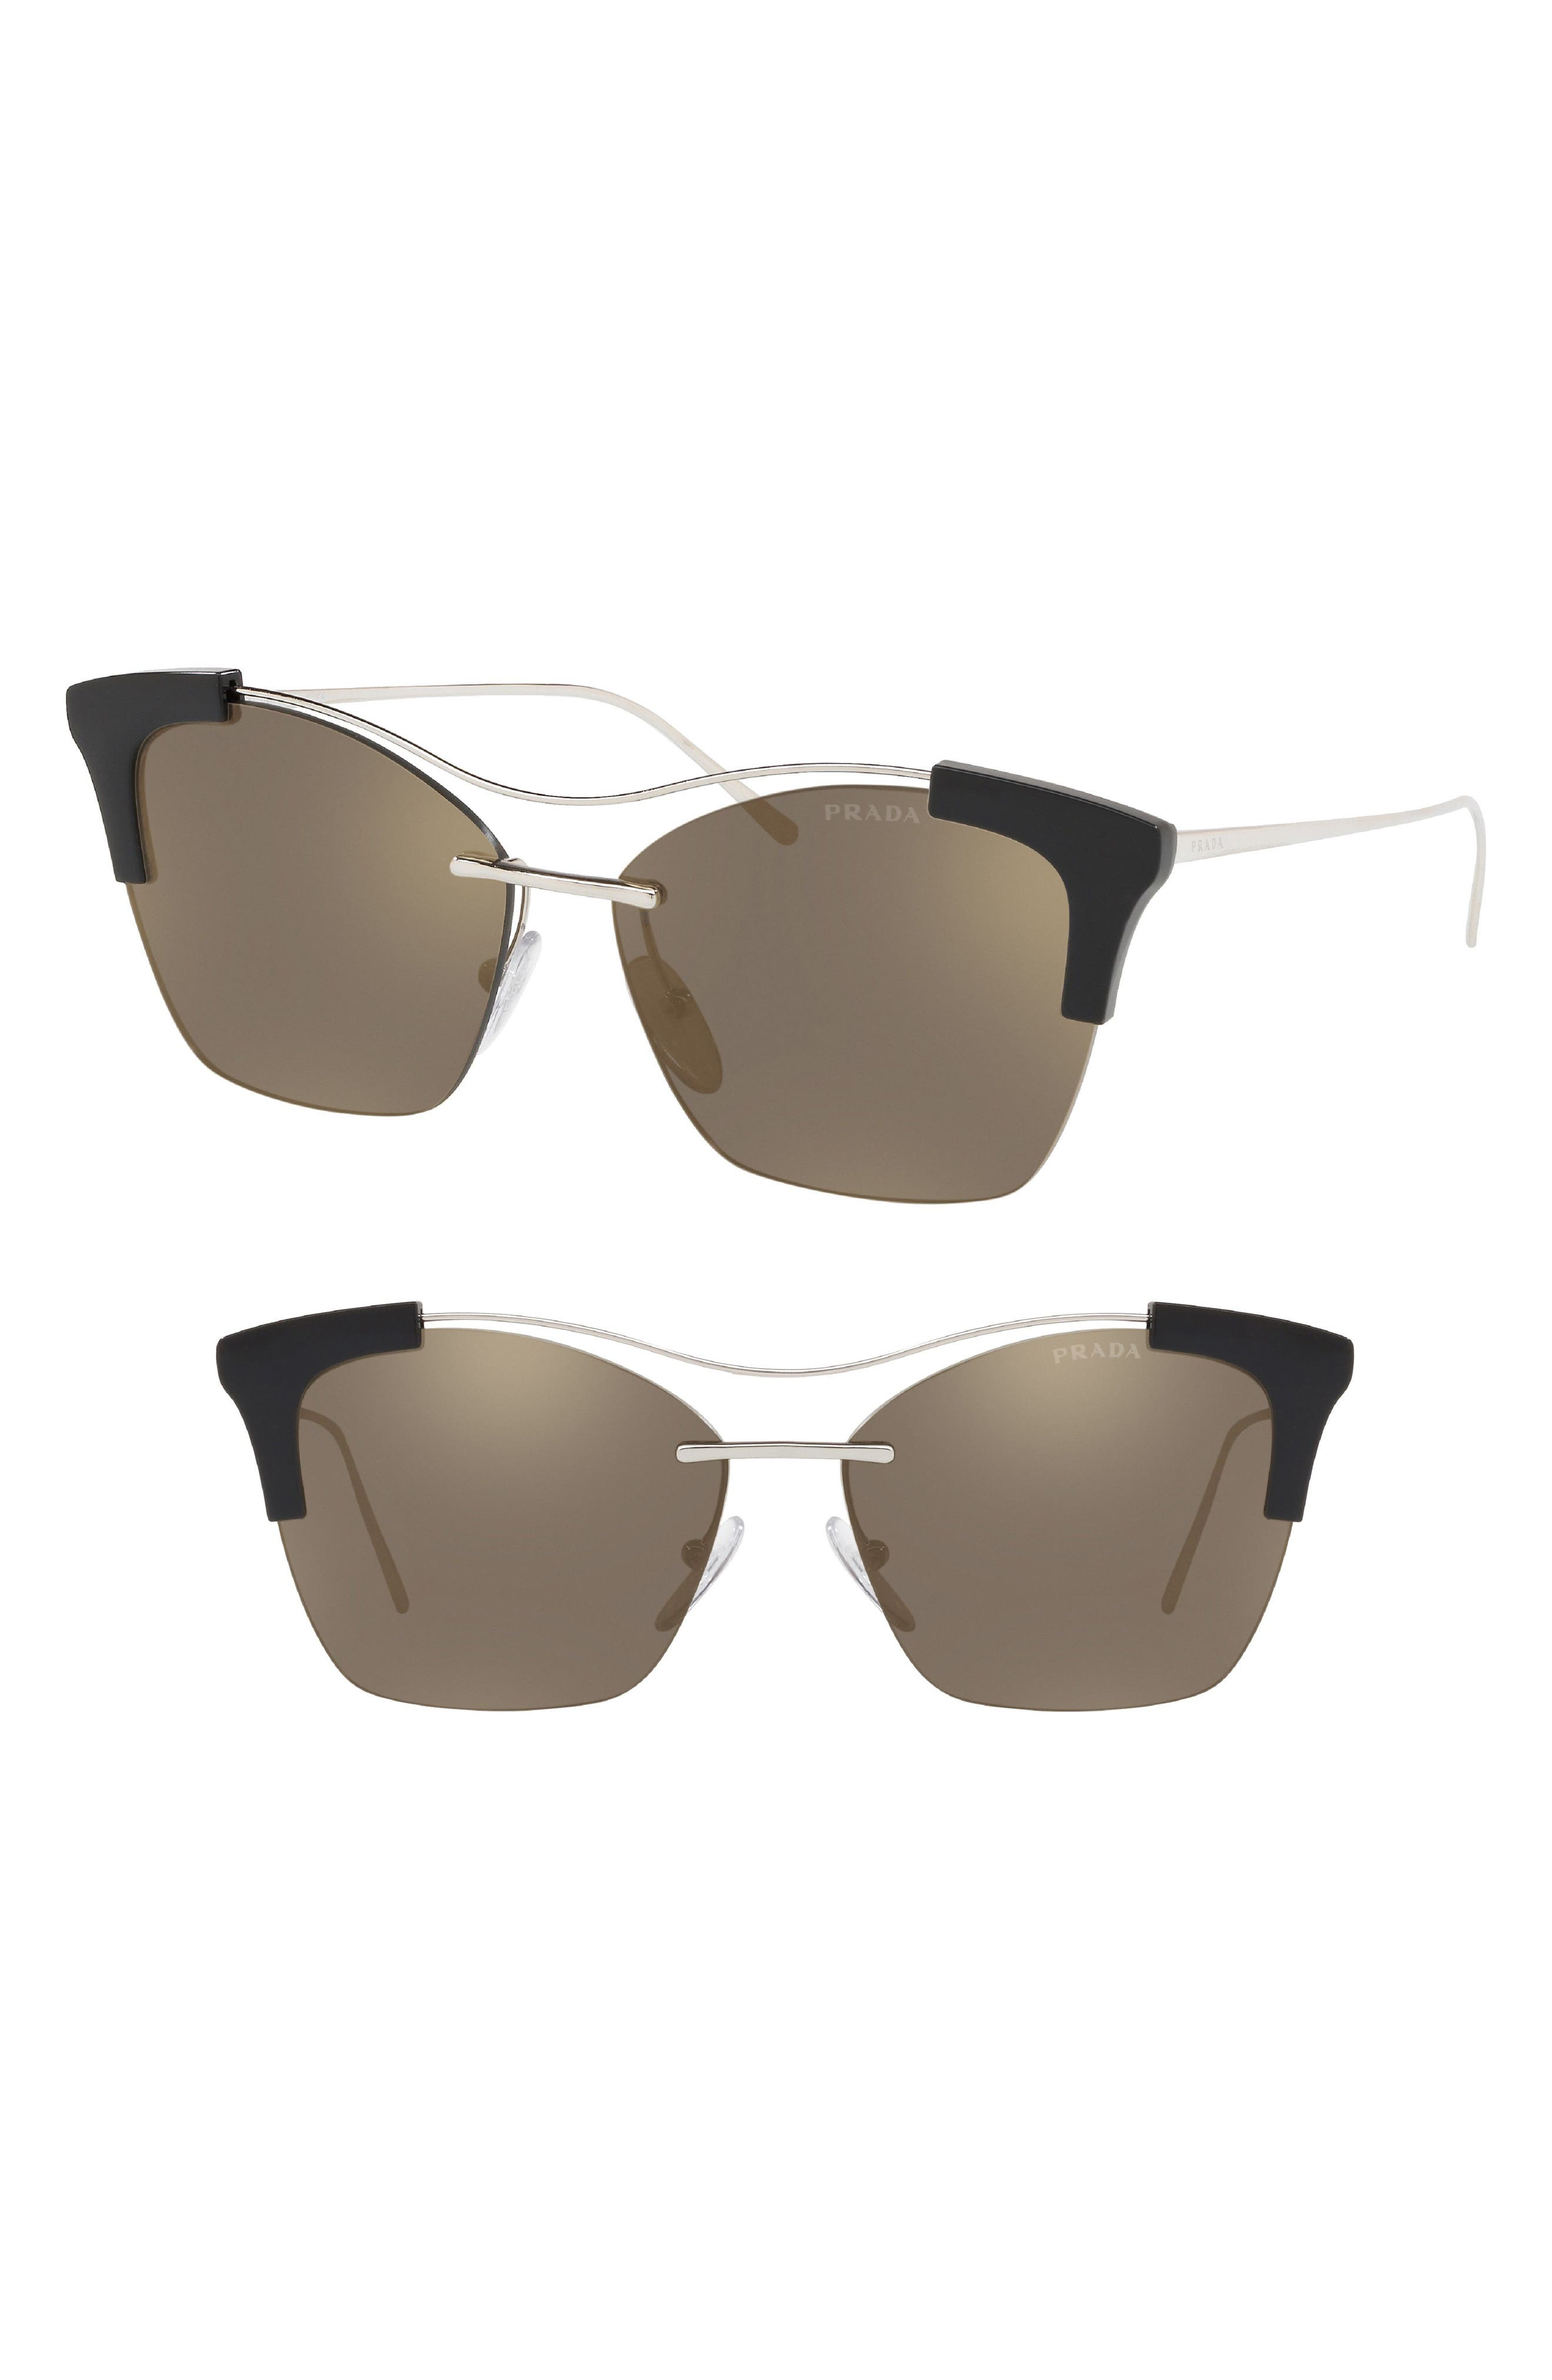 Evolution 57mm Butterfly Sunglasses,                         Main,                         color, 042